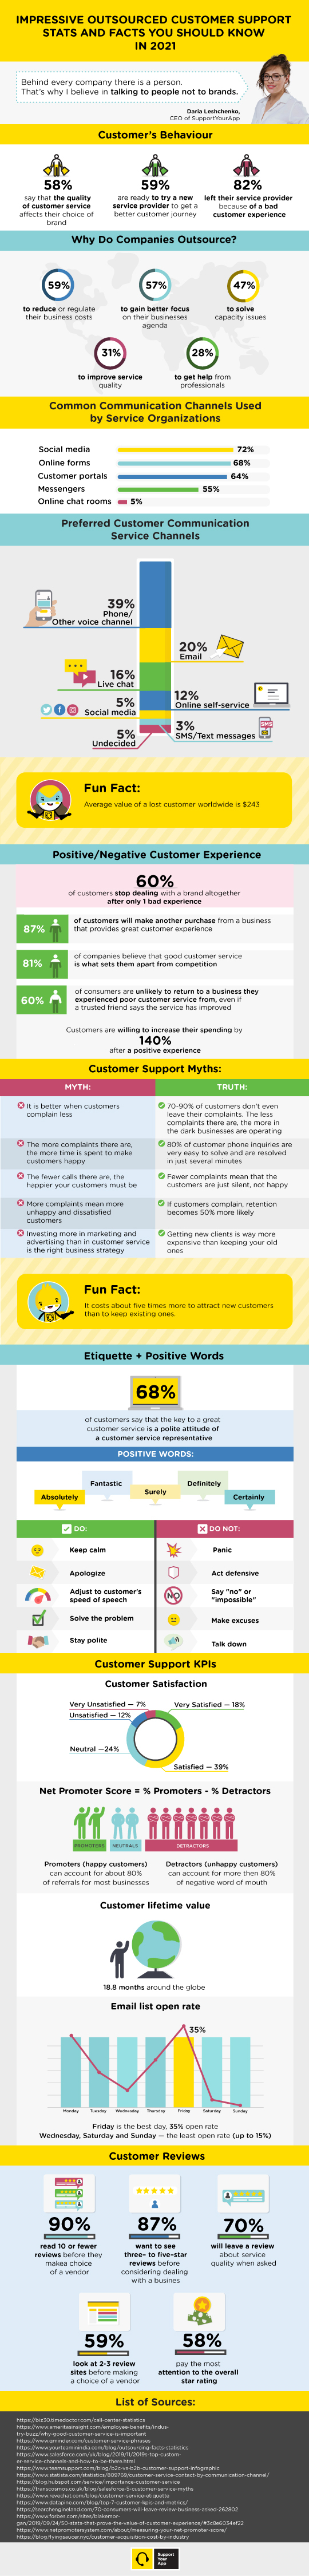 Outsourced Customer Support Stats and Facts